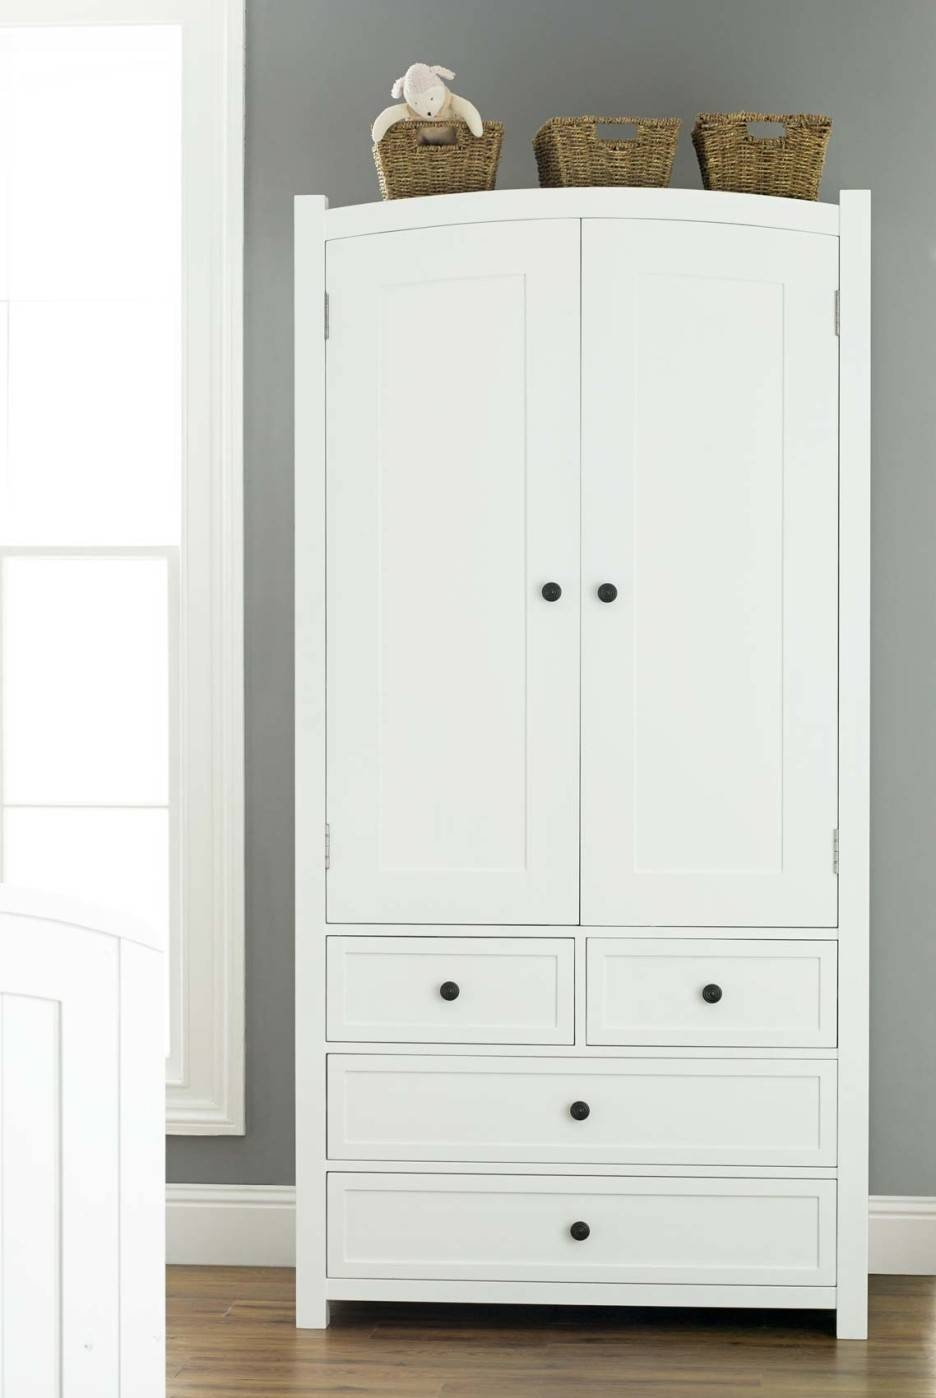 Flawless White Wooden Kids Wardrobe With Drawers And Brown Wicker Inside Cheap Baby Wardrobes (View 17 of 30)